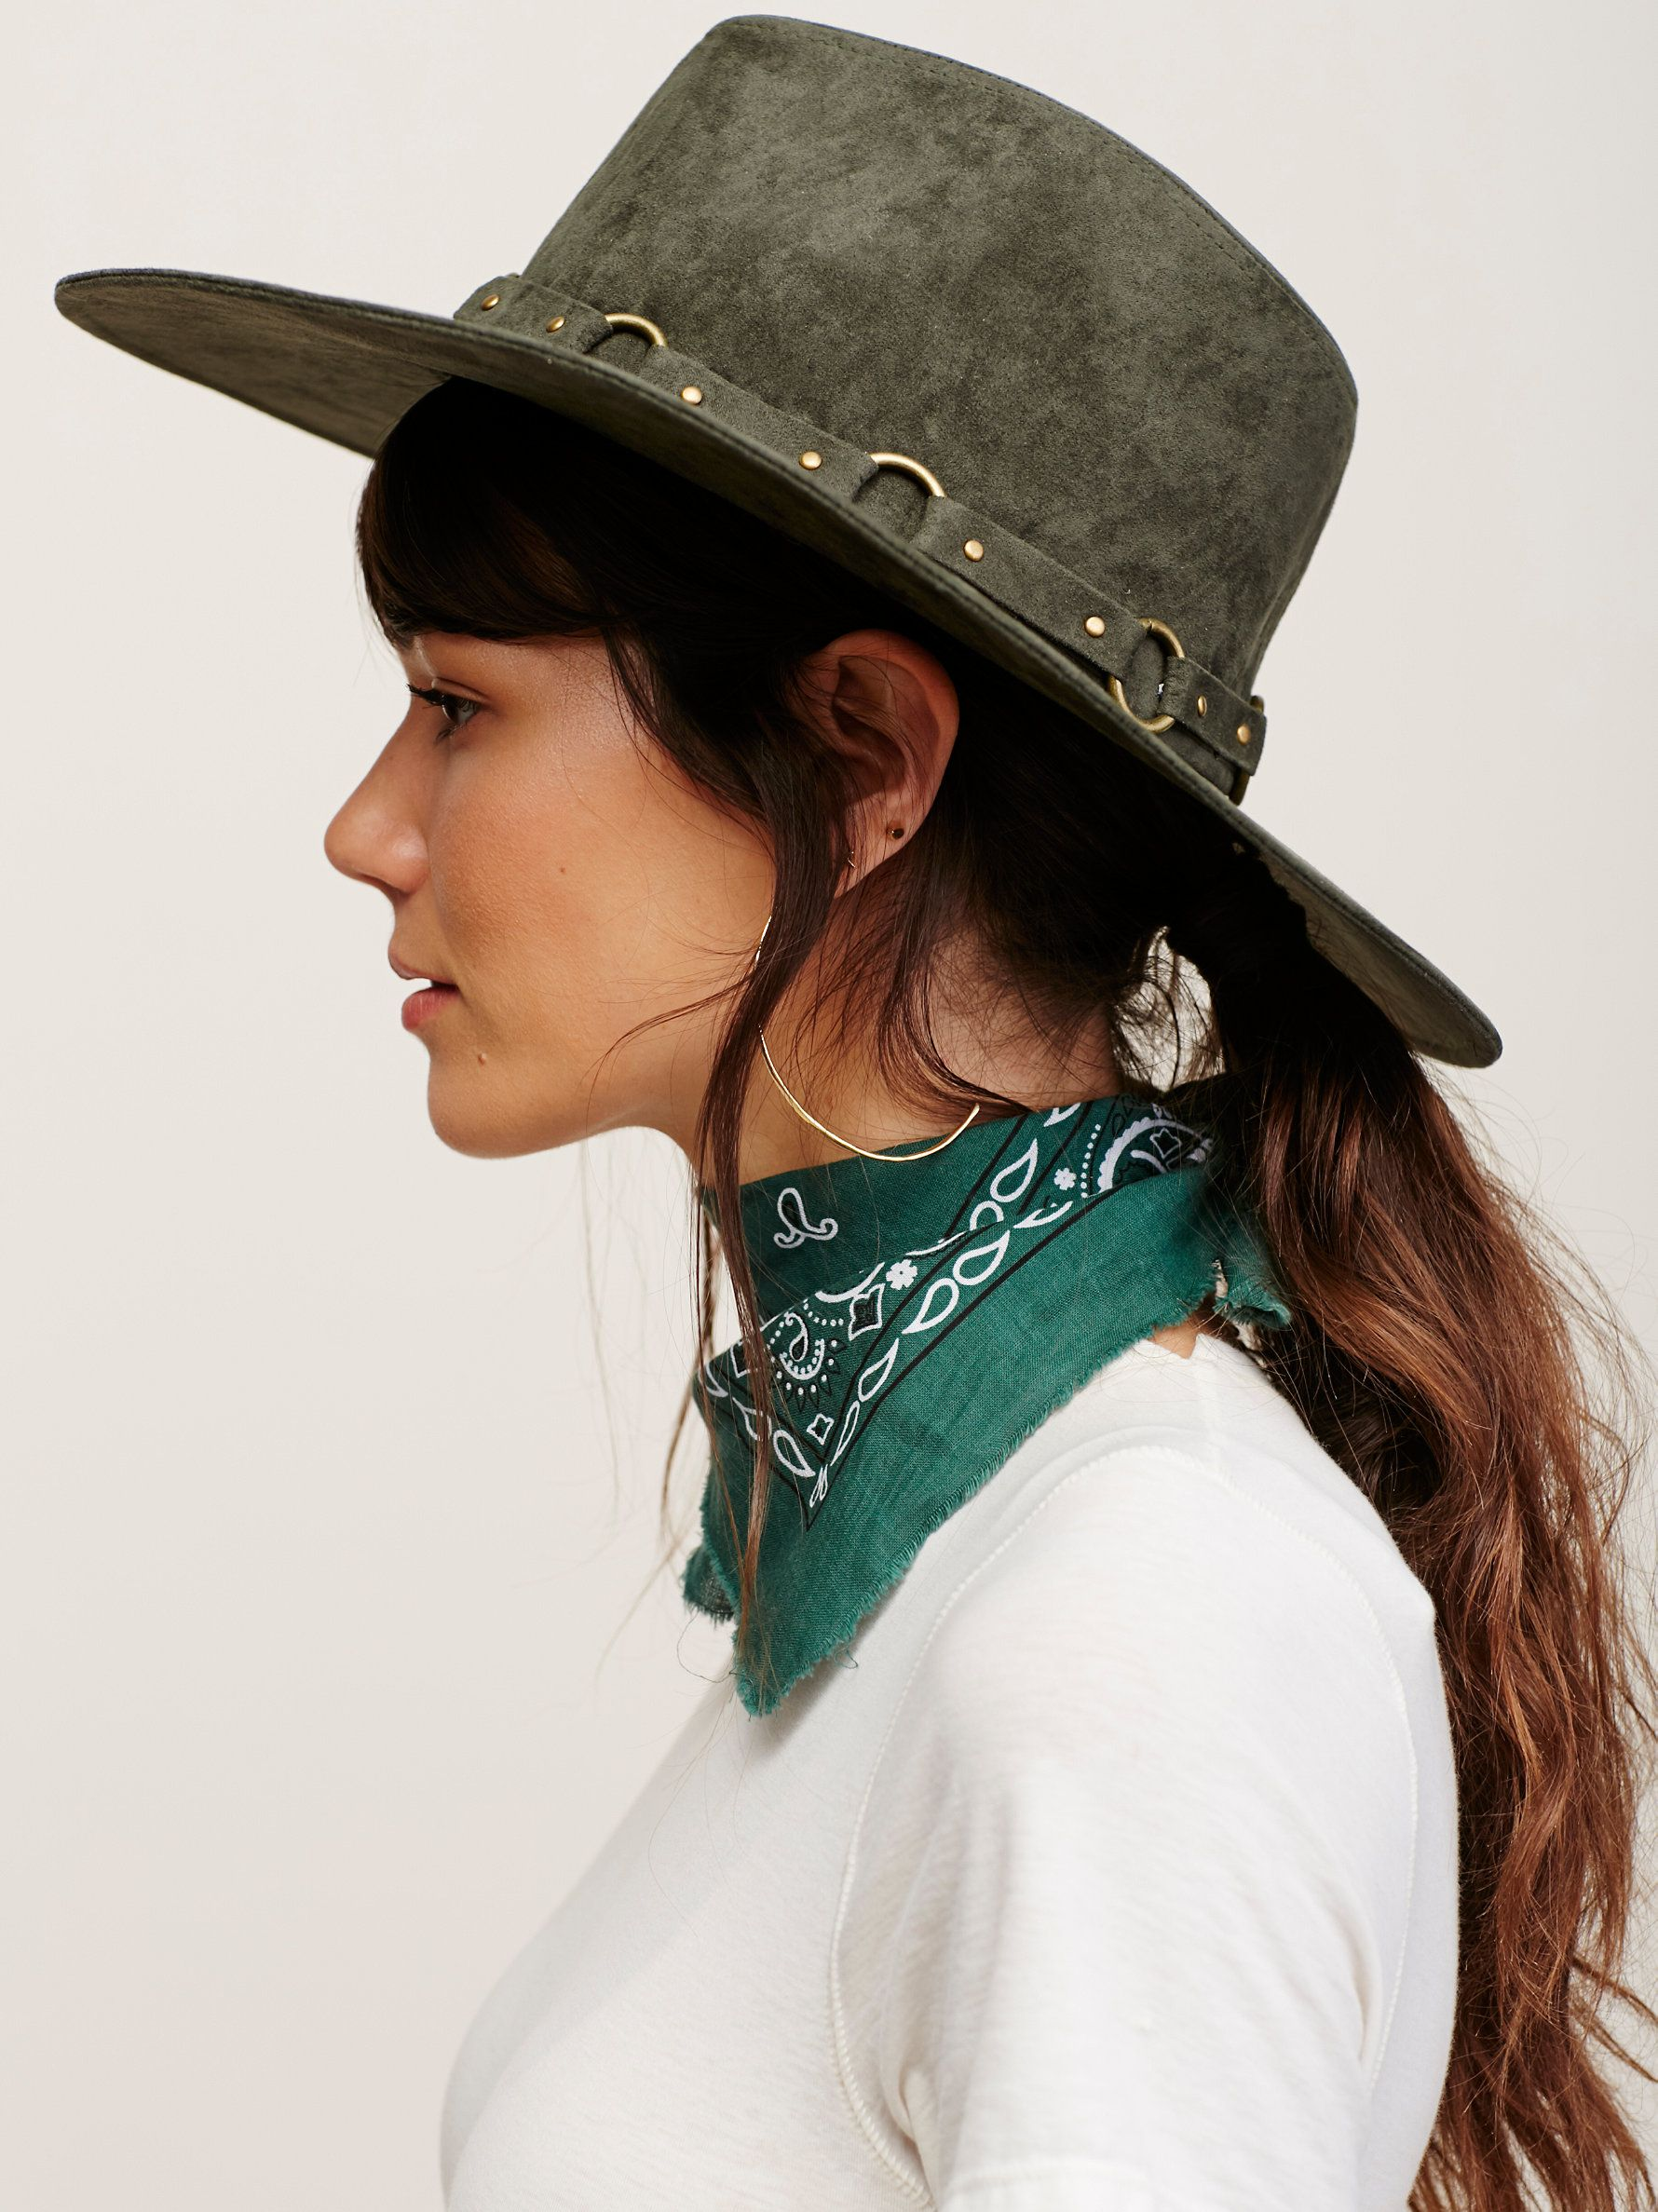 Ring leader faux suede hat clothes pinterest suede hat metal jpg 1780x2375  Rancher style clothing ae36e3144da4